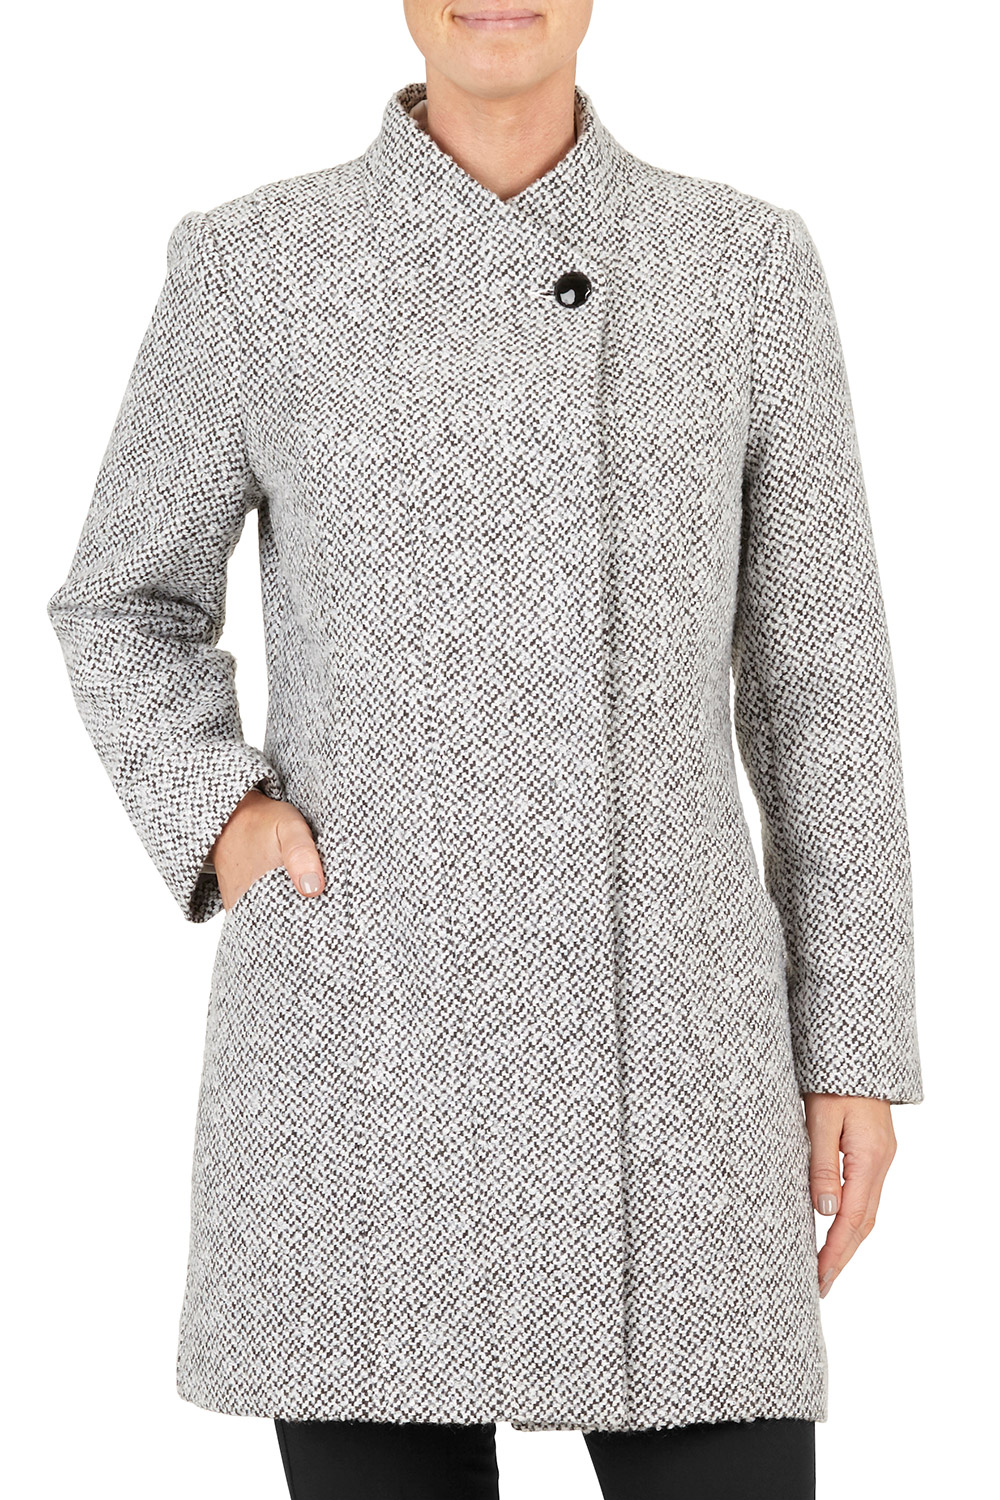 RRP £38 WOMEN`S BRAND NEW BON MARCHE LIGHT GREY COLLARED LINED COAT